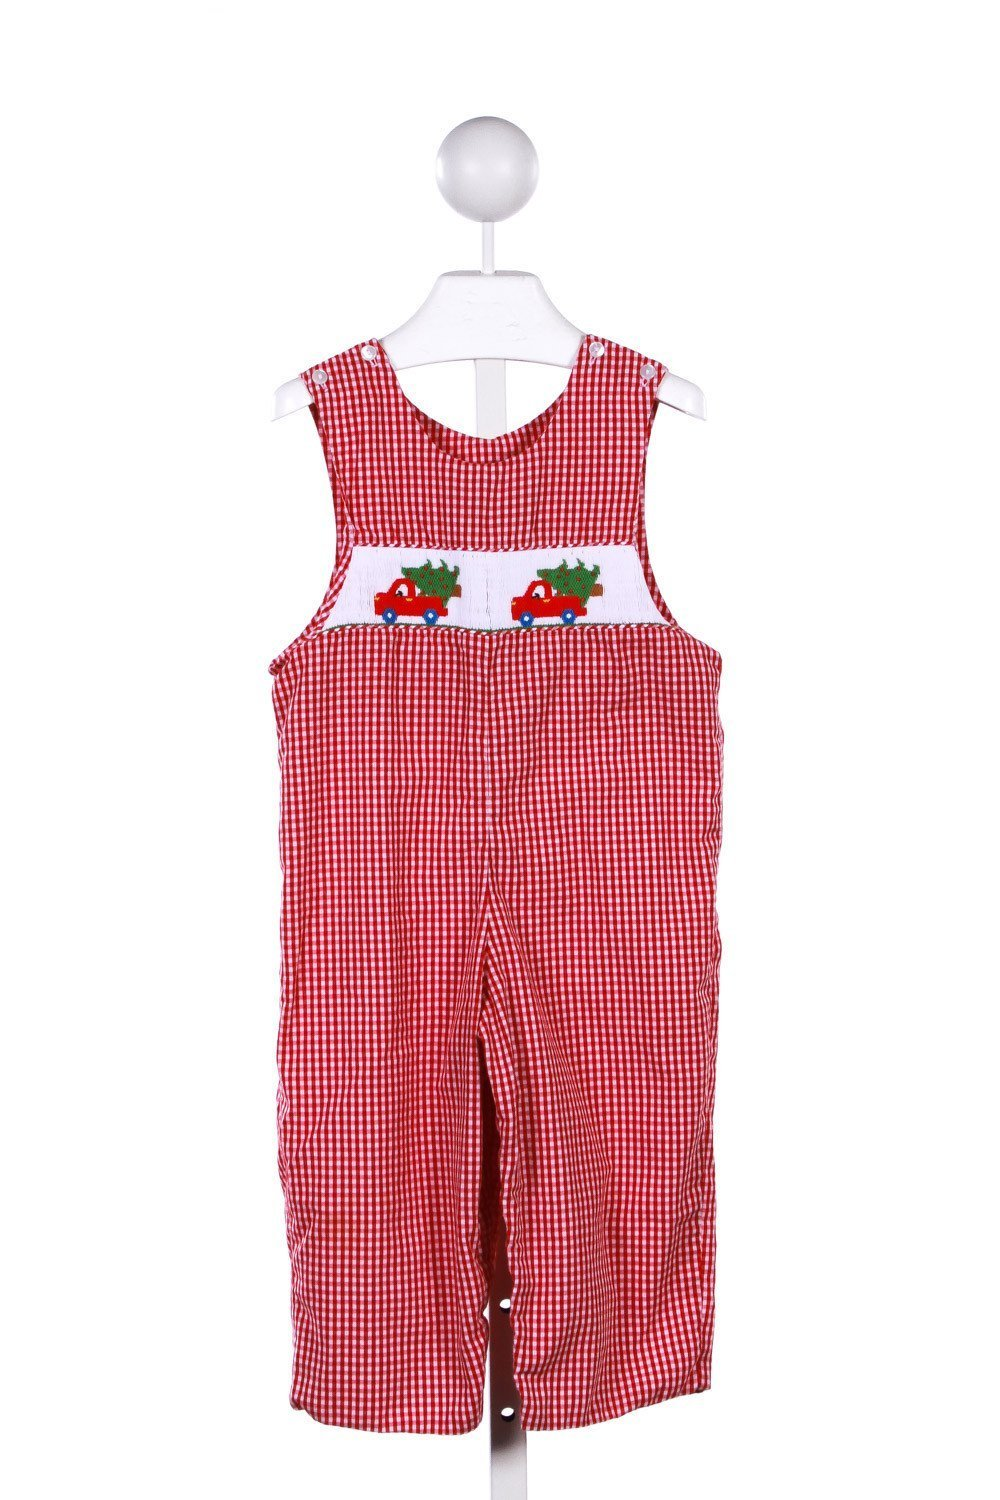 396111a5c ANAVINI RED GINGHAM LONGALL WITH CHRISTMAS TREE CAR SMOCKING *FAINT SPOT ON  LEG